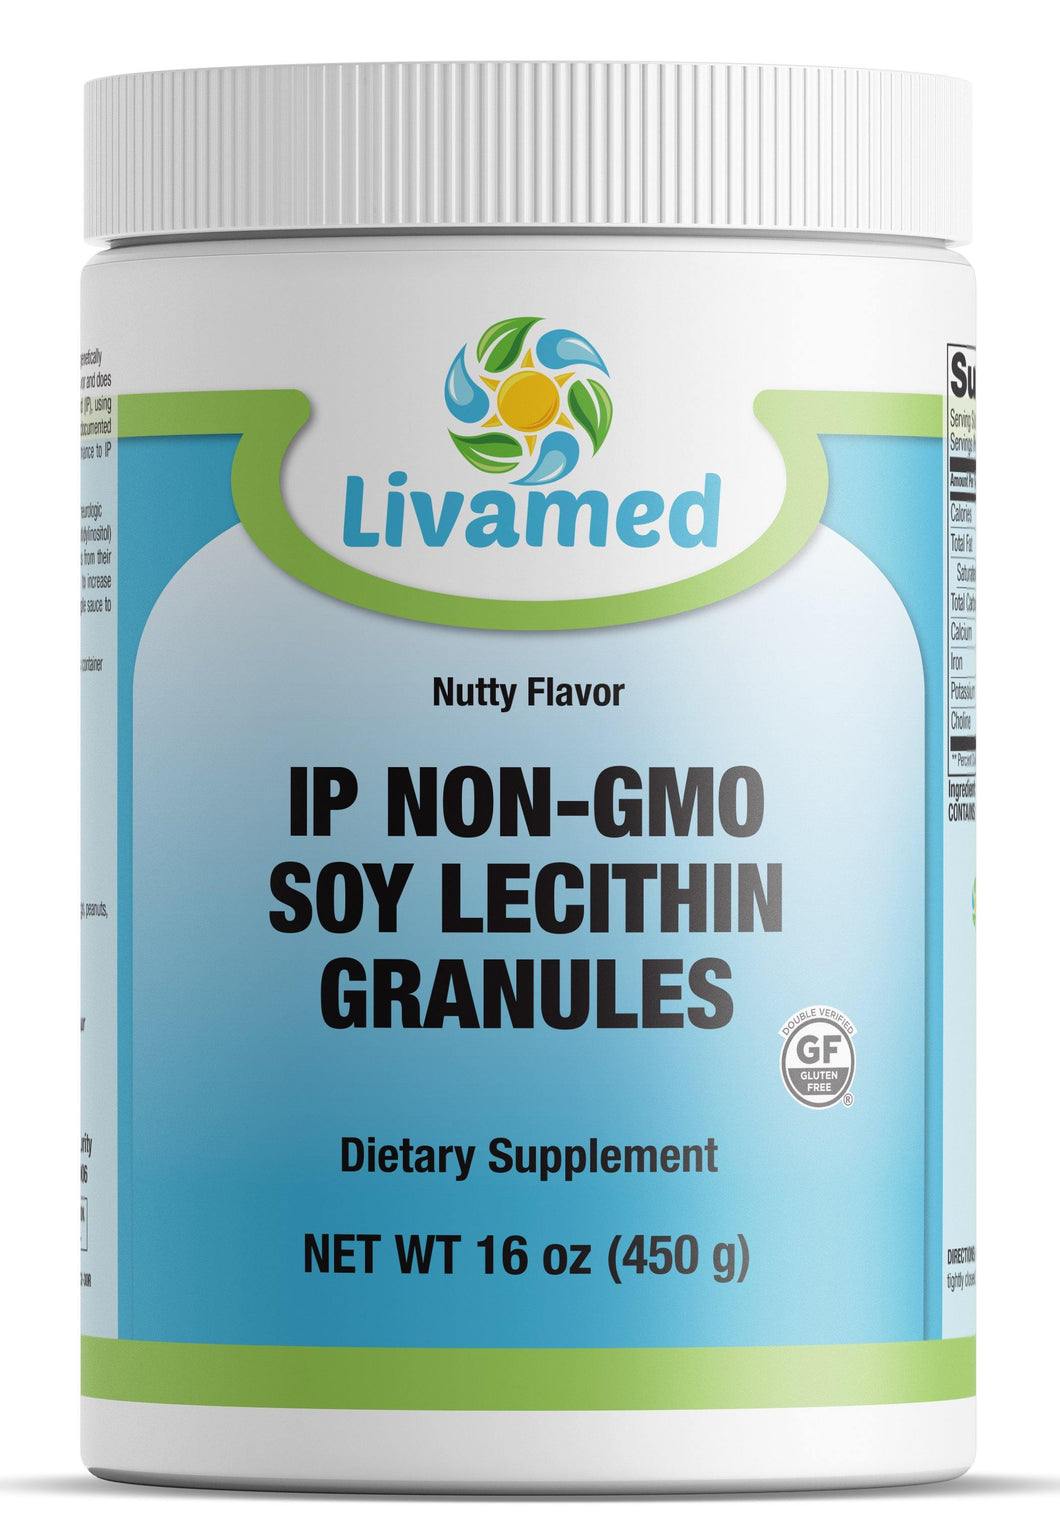 Livamed - IP Non-GMO Soy Lecithin Granules (New PCR Tub Coming Soon) 16 oz Count - Livamed Vitamins